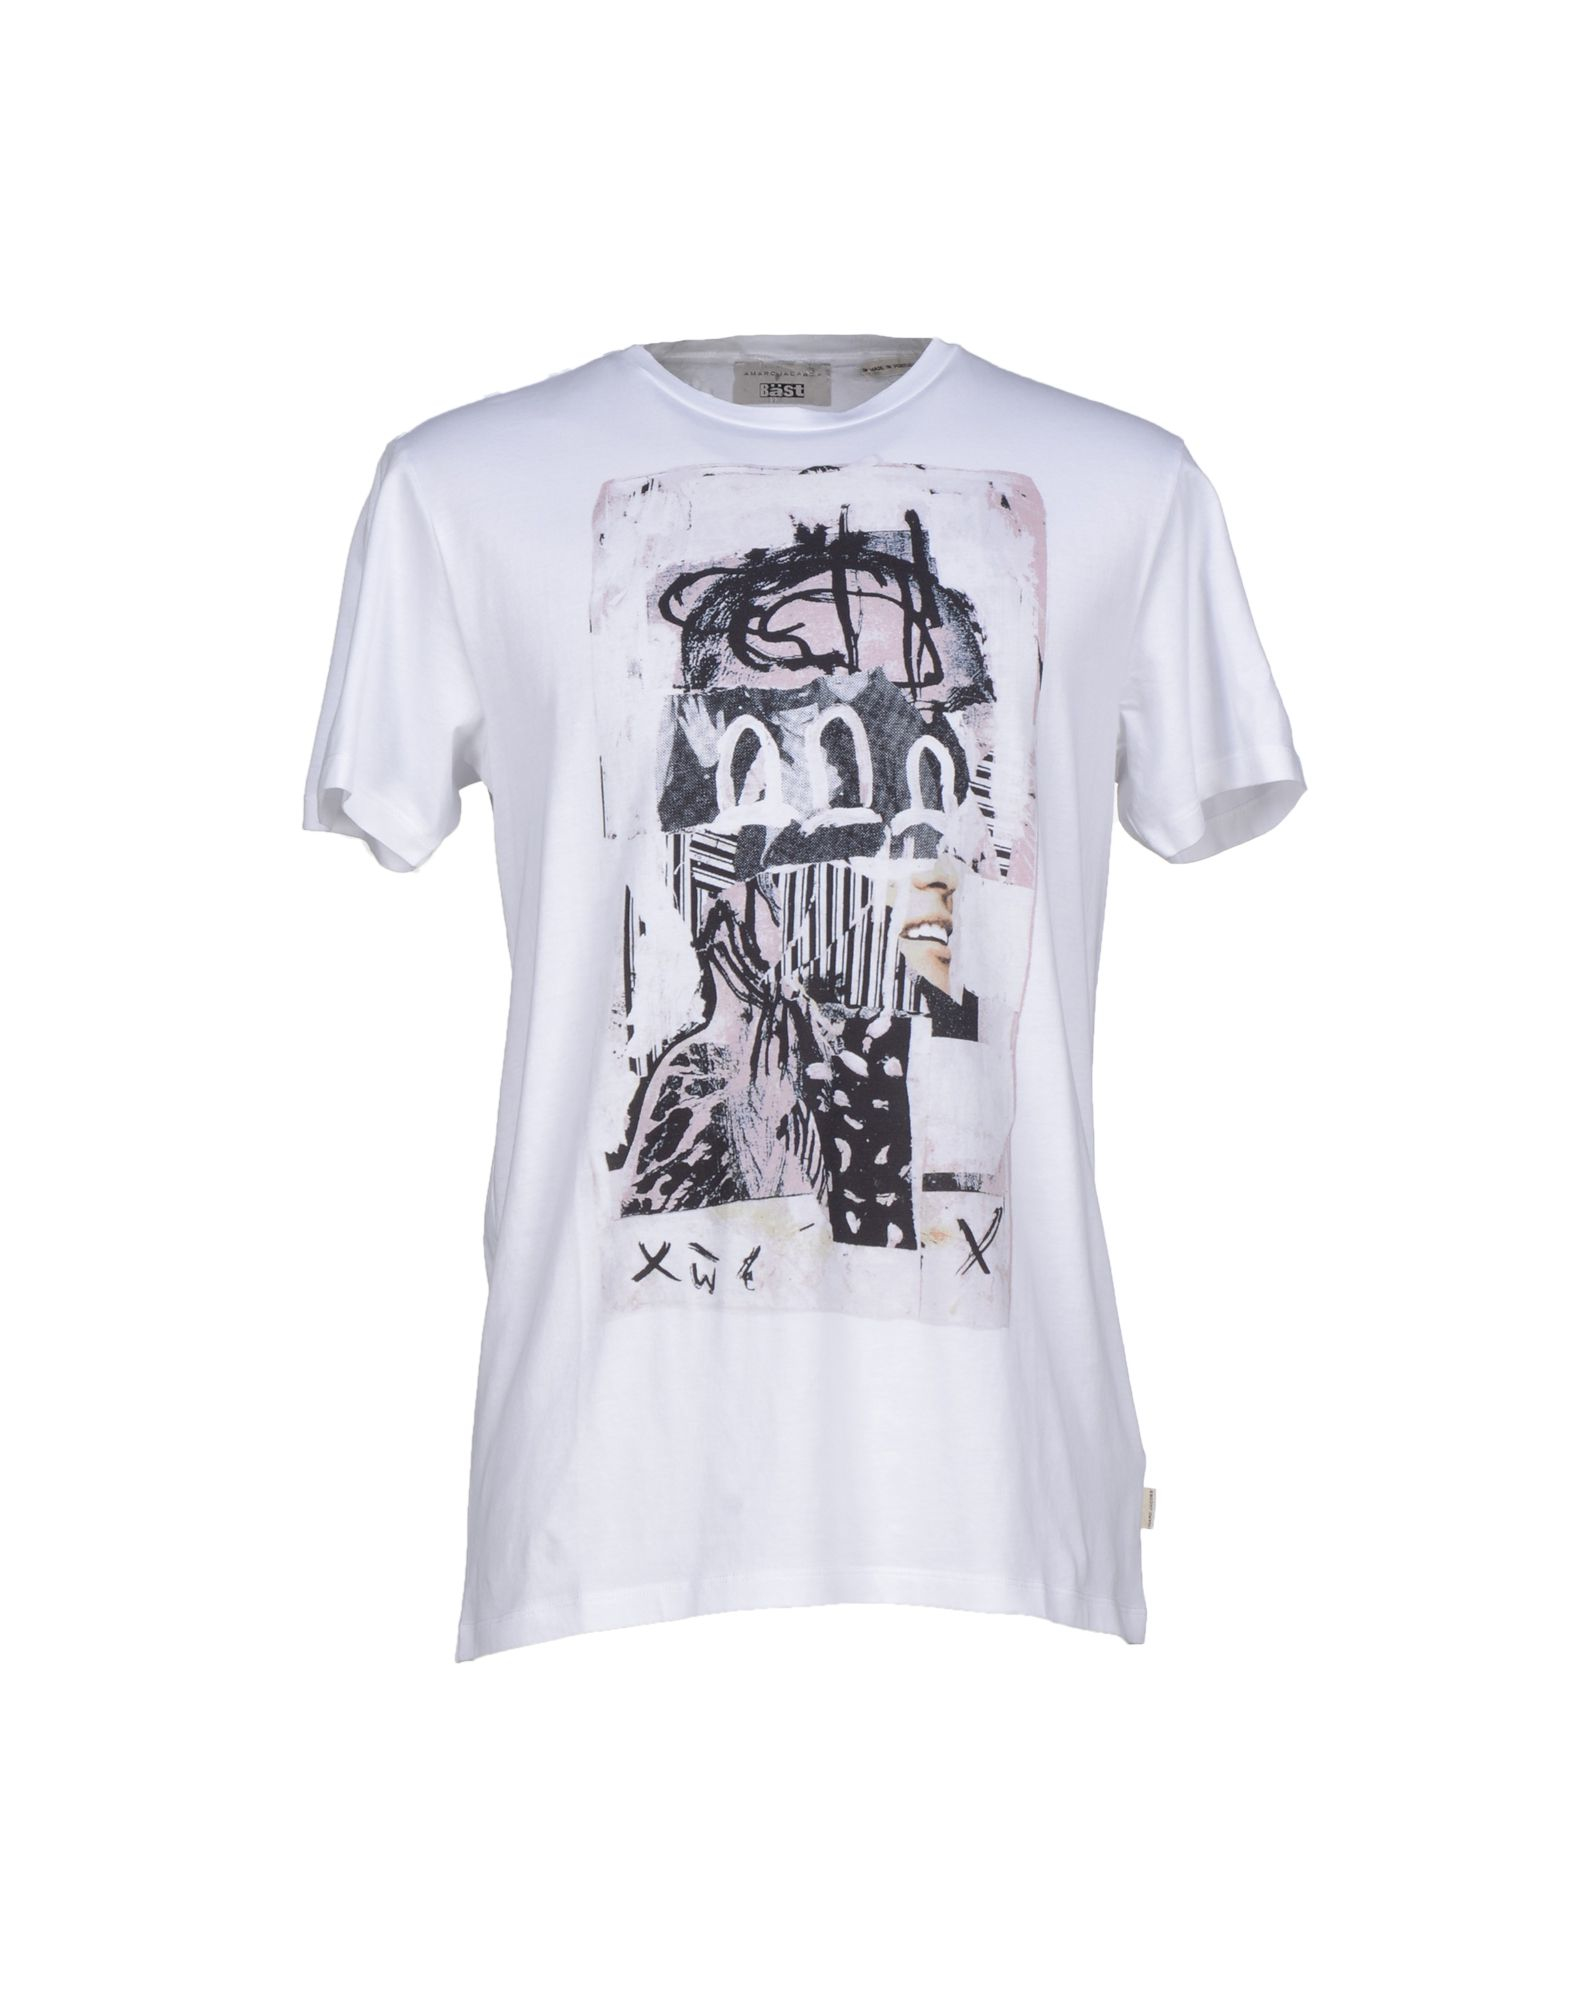 Marc jacobs T-shirt in White for Men | Lyst